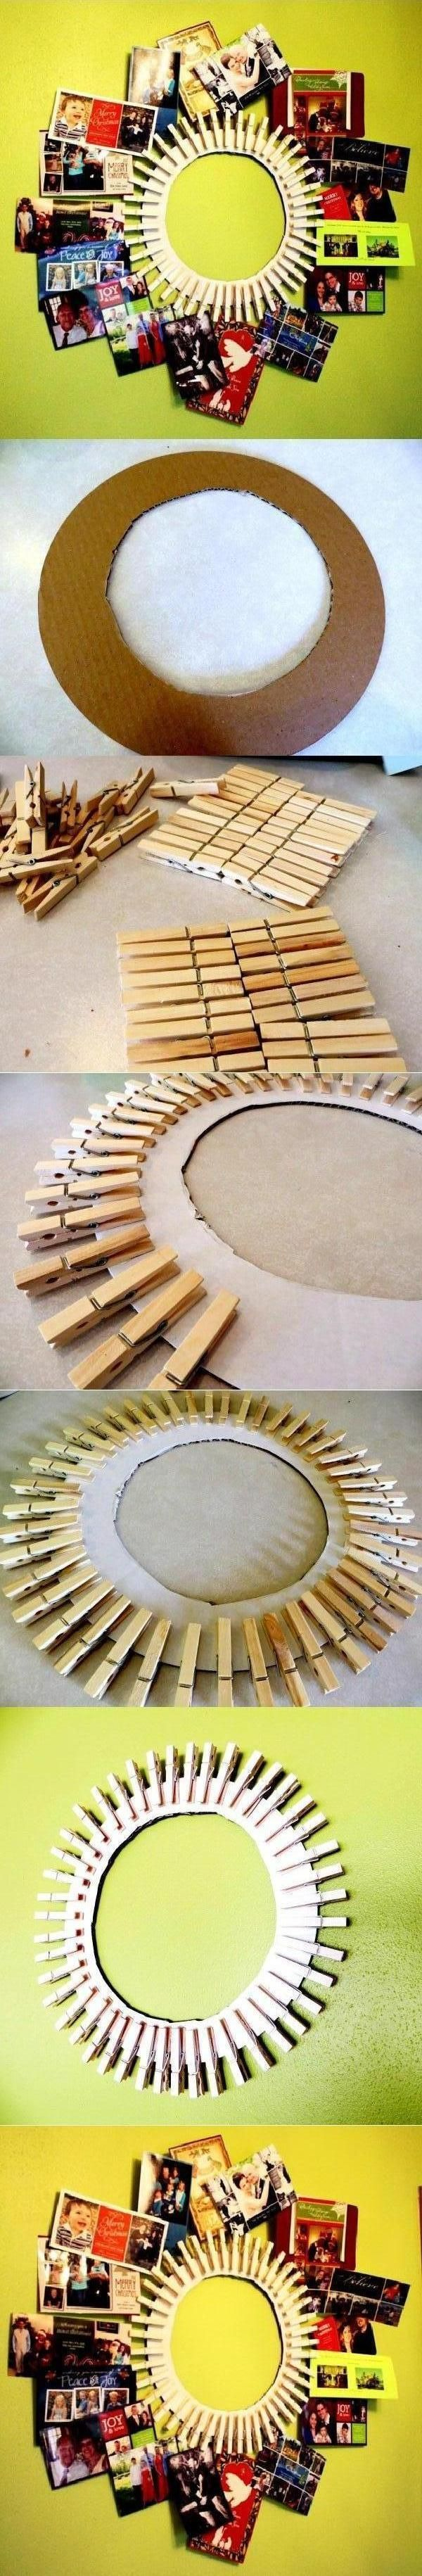 """DIY Clothespin Picture Frame (Advent calendar; important notes/ ticket holder/Calendar; Laundry lost socks) Can dye clothespins, or decoupage them. Cut carboard circle. I would do with a full 11"""" circle. Generously white glue 12"""" scrapbooking paper. Glue clothepins on. In center put calendar, or family photos, scenery, next project etc. For Advent, only 24 clothespins, put treats, etc in small paper/material bags. Bags would be cute made out of scrapbooking odds+ends."""